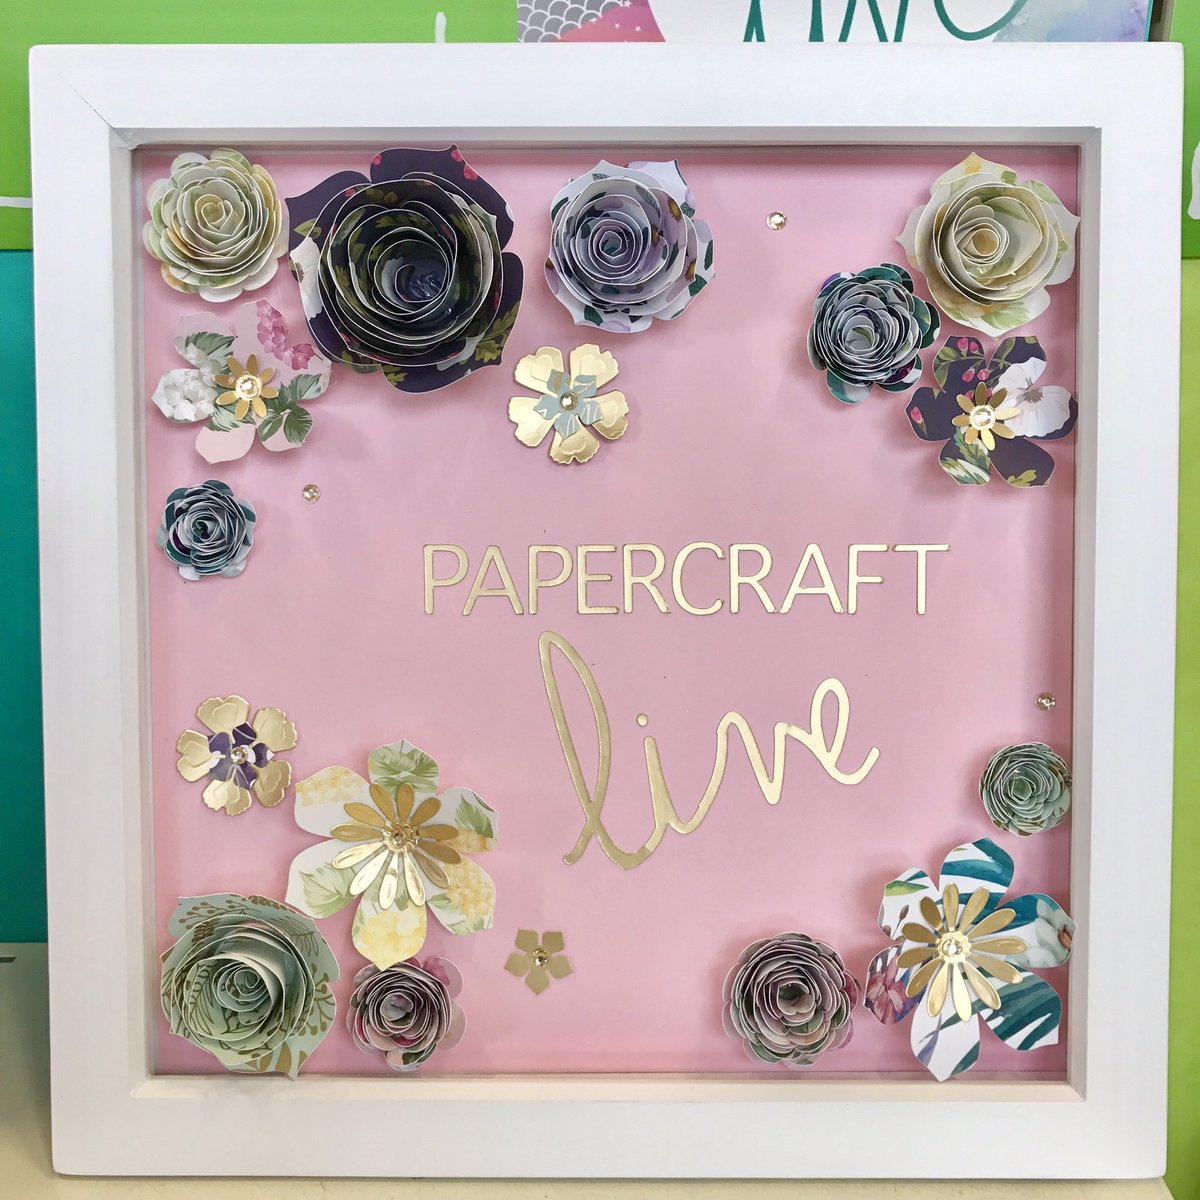 Hobbycraft Leeds On Twitter Box Frame Made Using The Cricut To